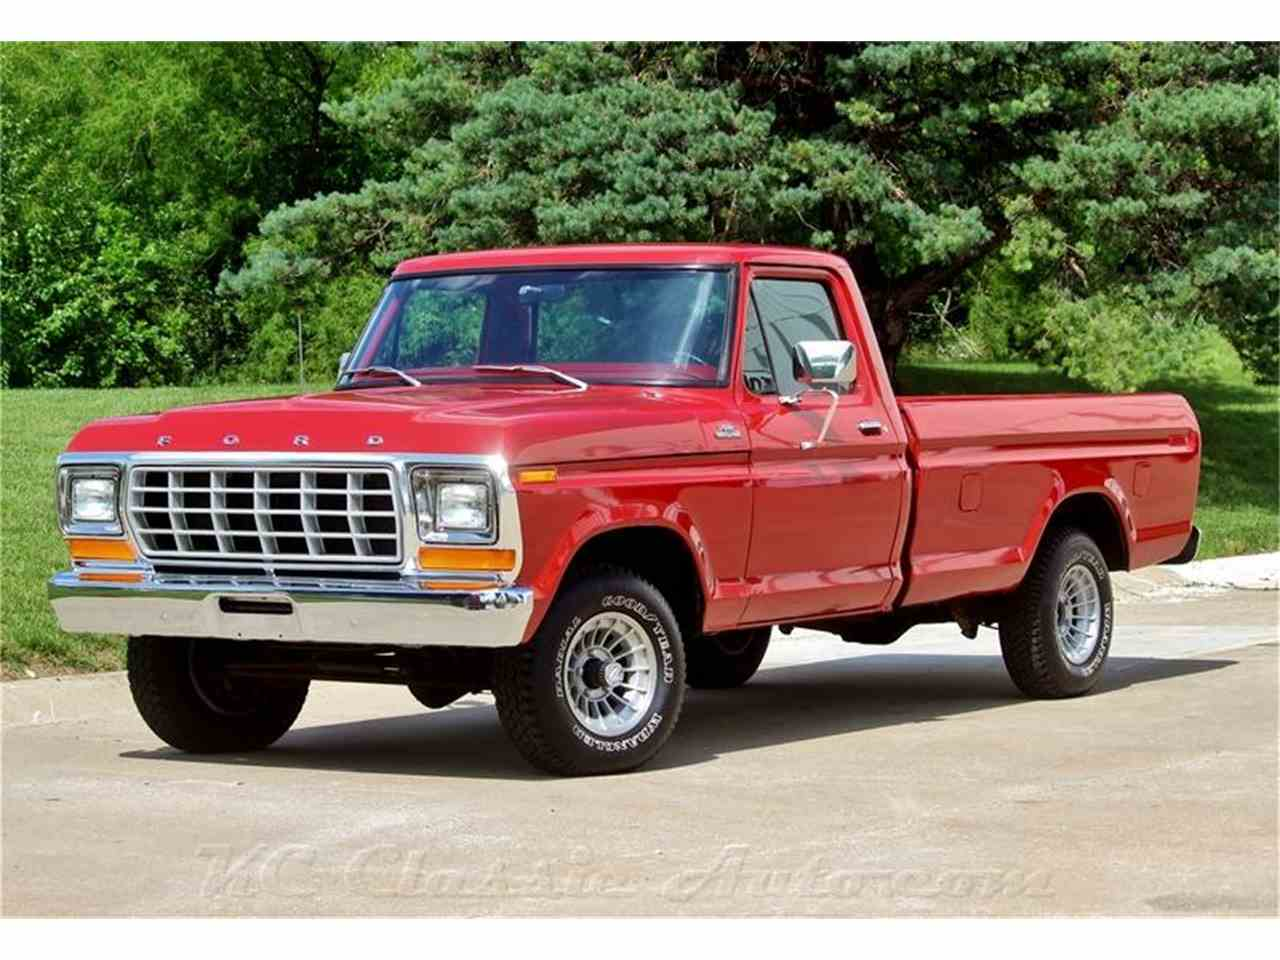 1979 ford f150 4x4 pending deal for sale cc 990194. Black Bedroom Furniture Sets. Home Design Ideas